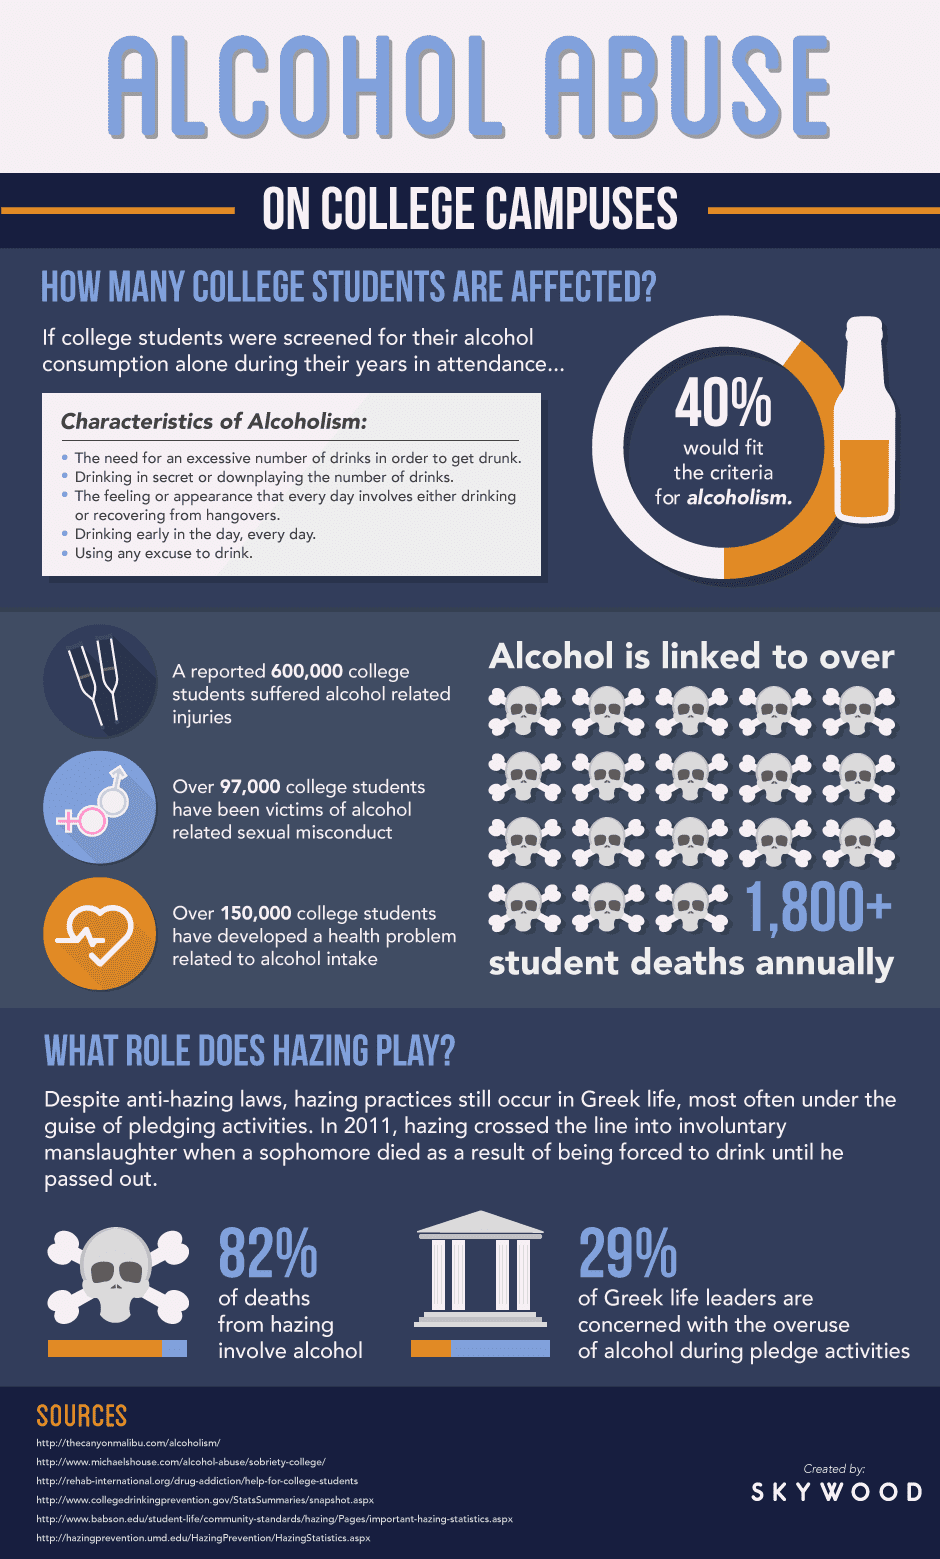 greek student athlete alcohol consumption It's time to tell a different story about fraternity drinking  clearly, greek  student organizations function with a level of risk that keeps many.